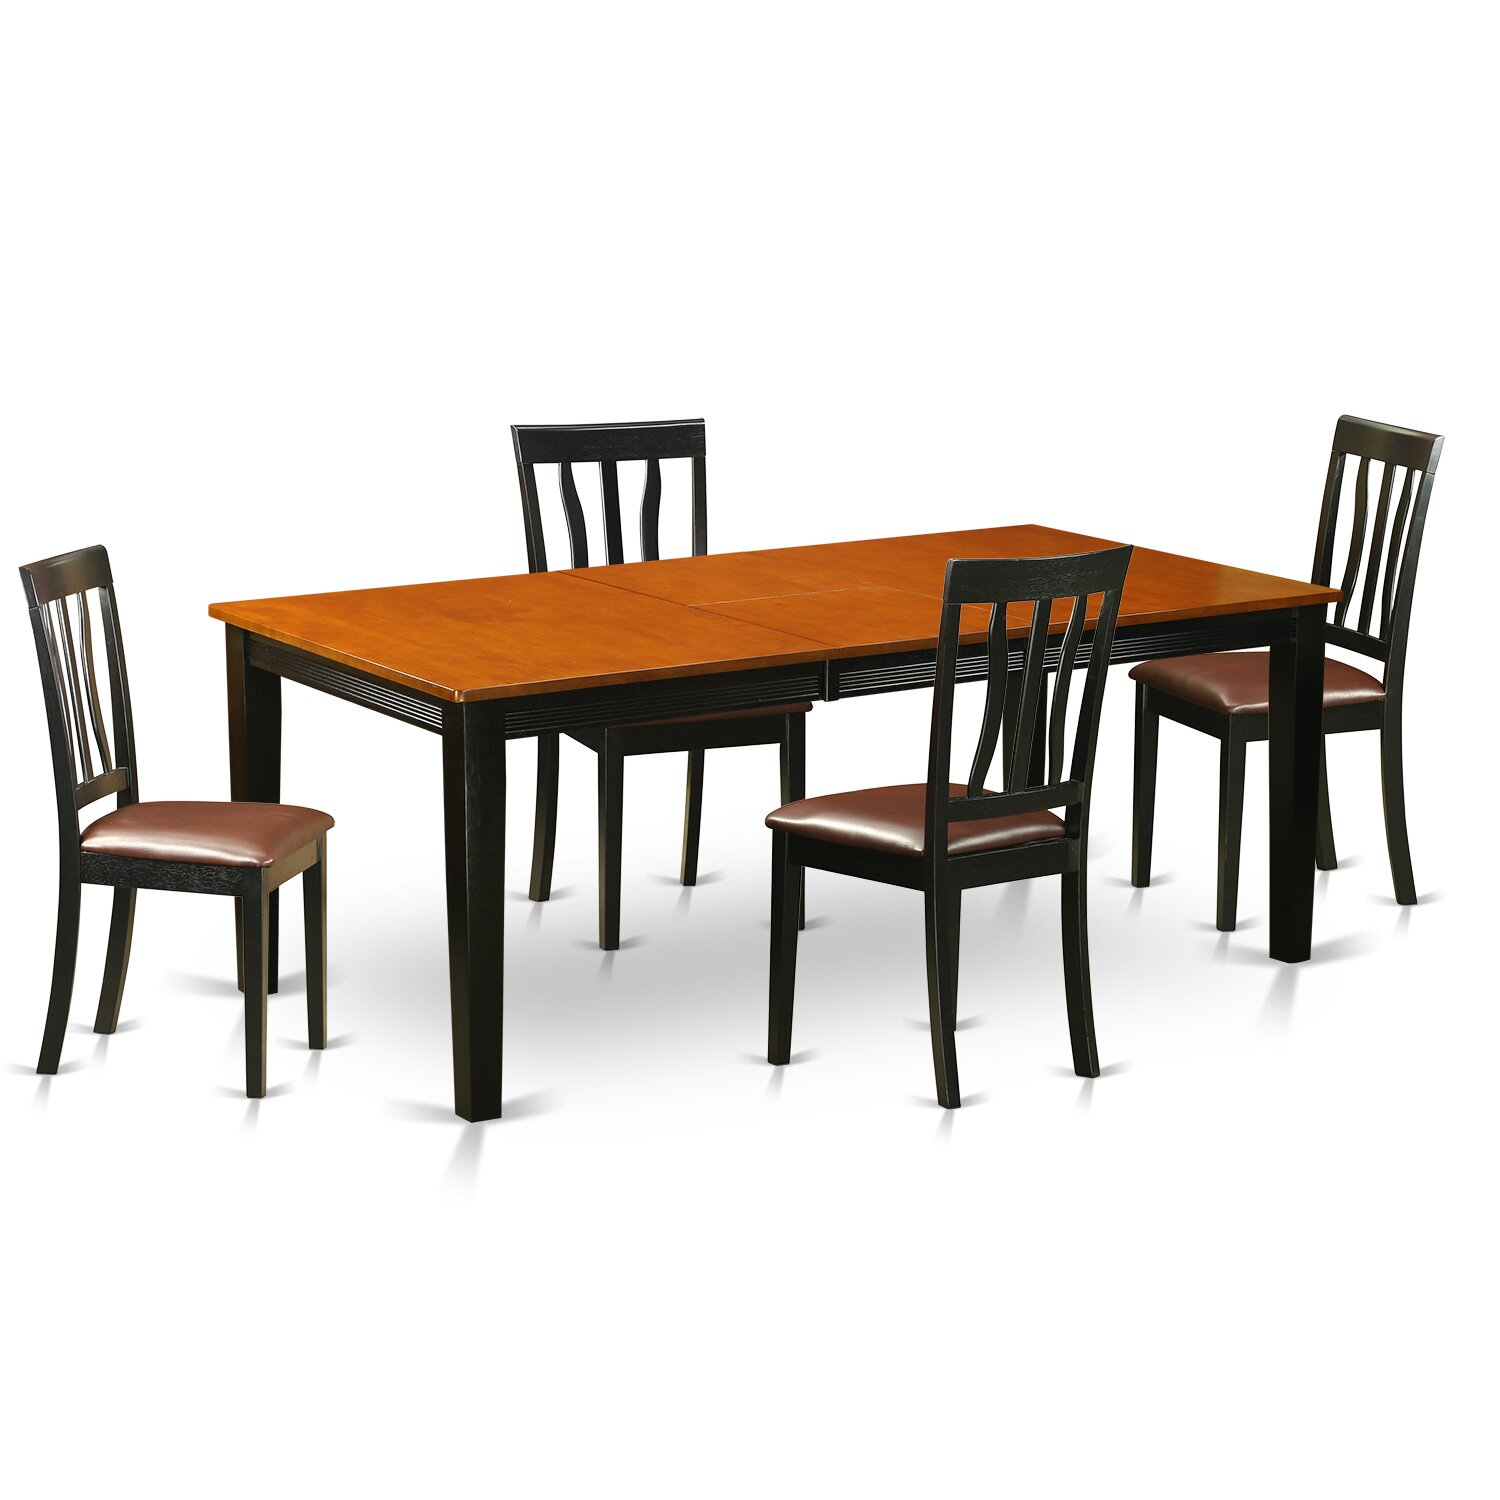 Quincy 5 piece dining set wayfair for 5 dining room chairs